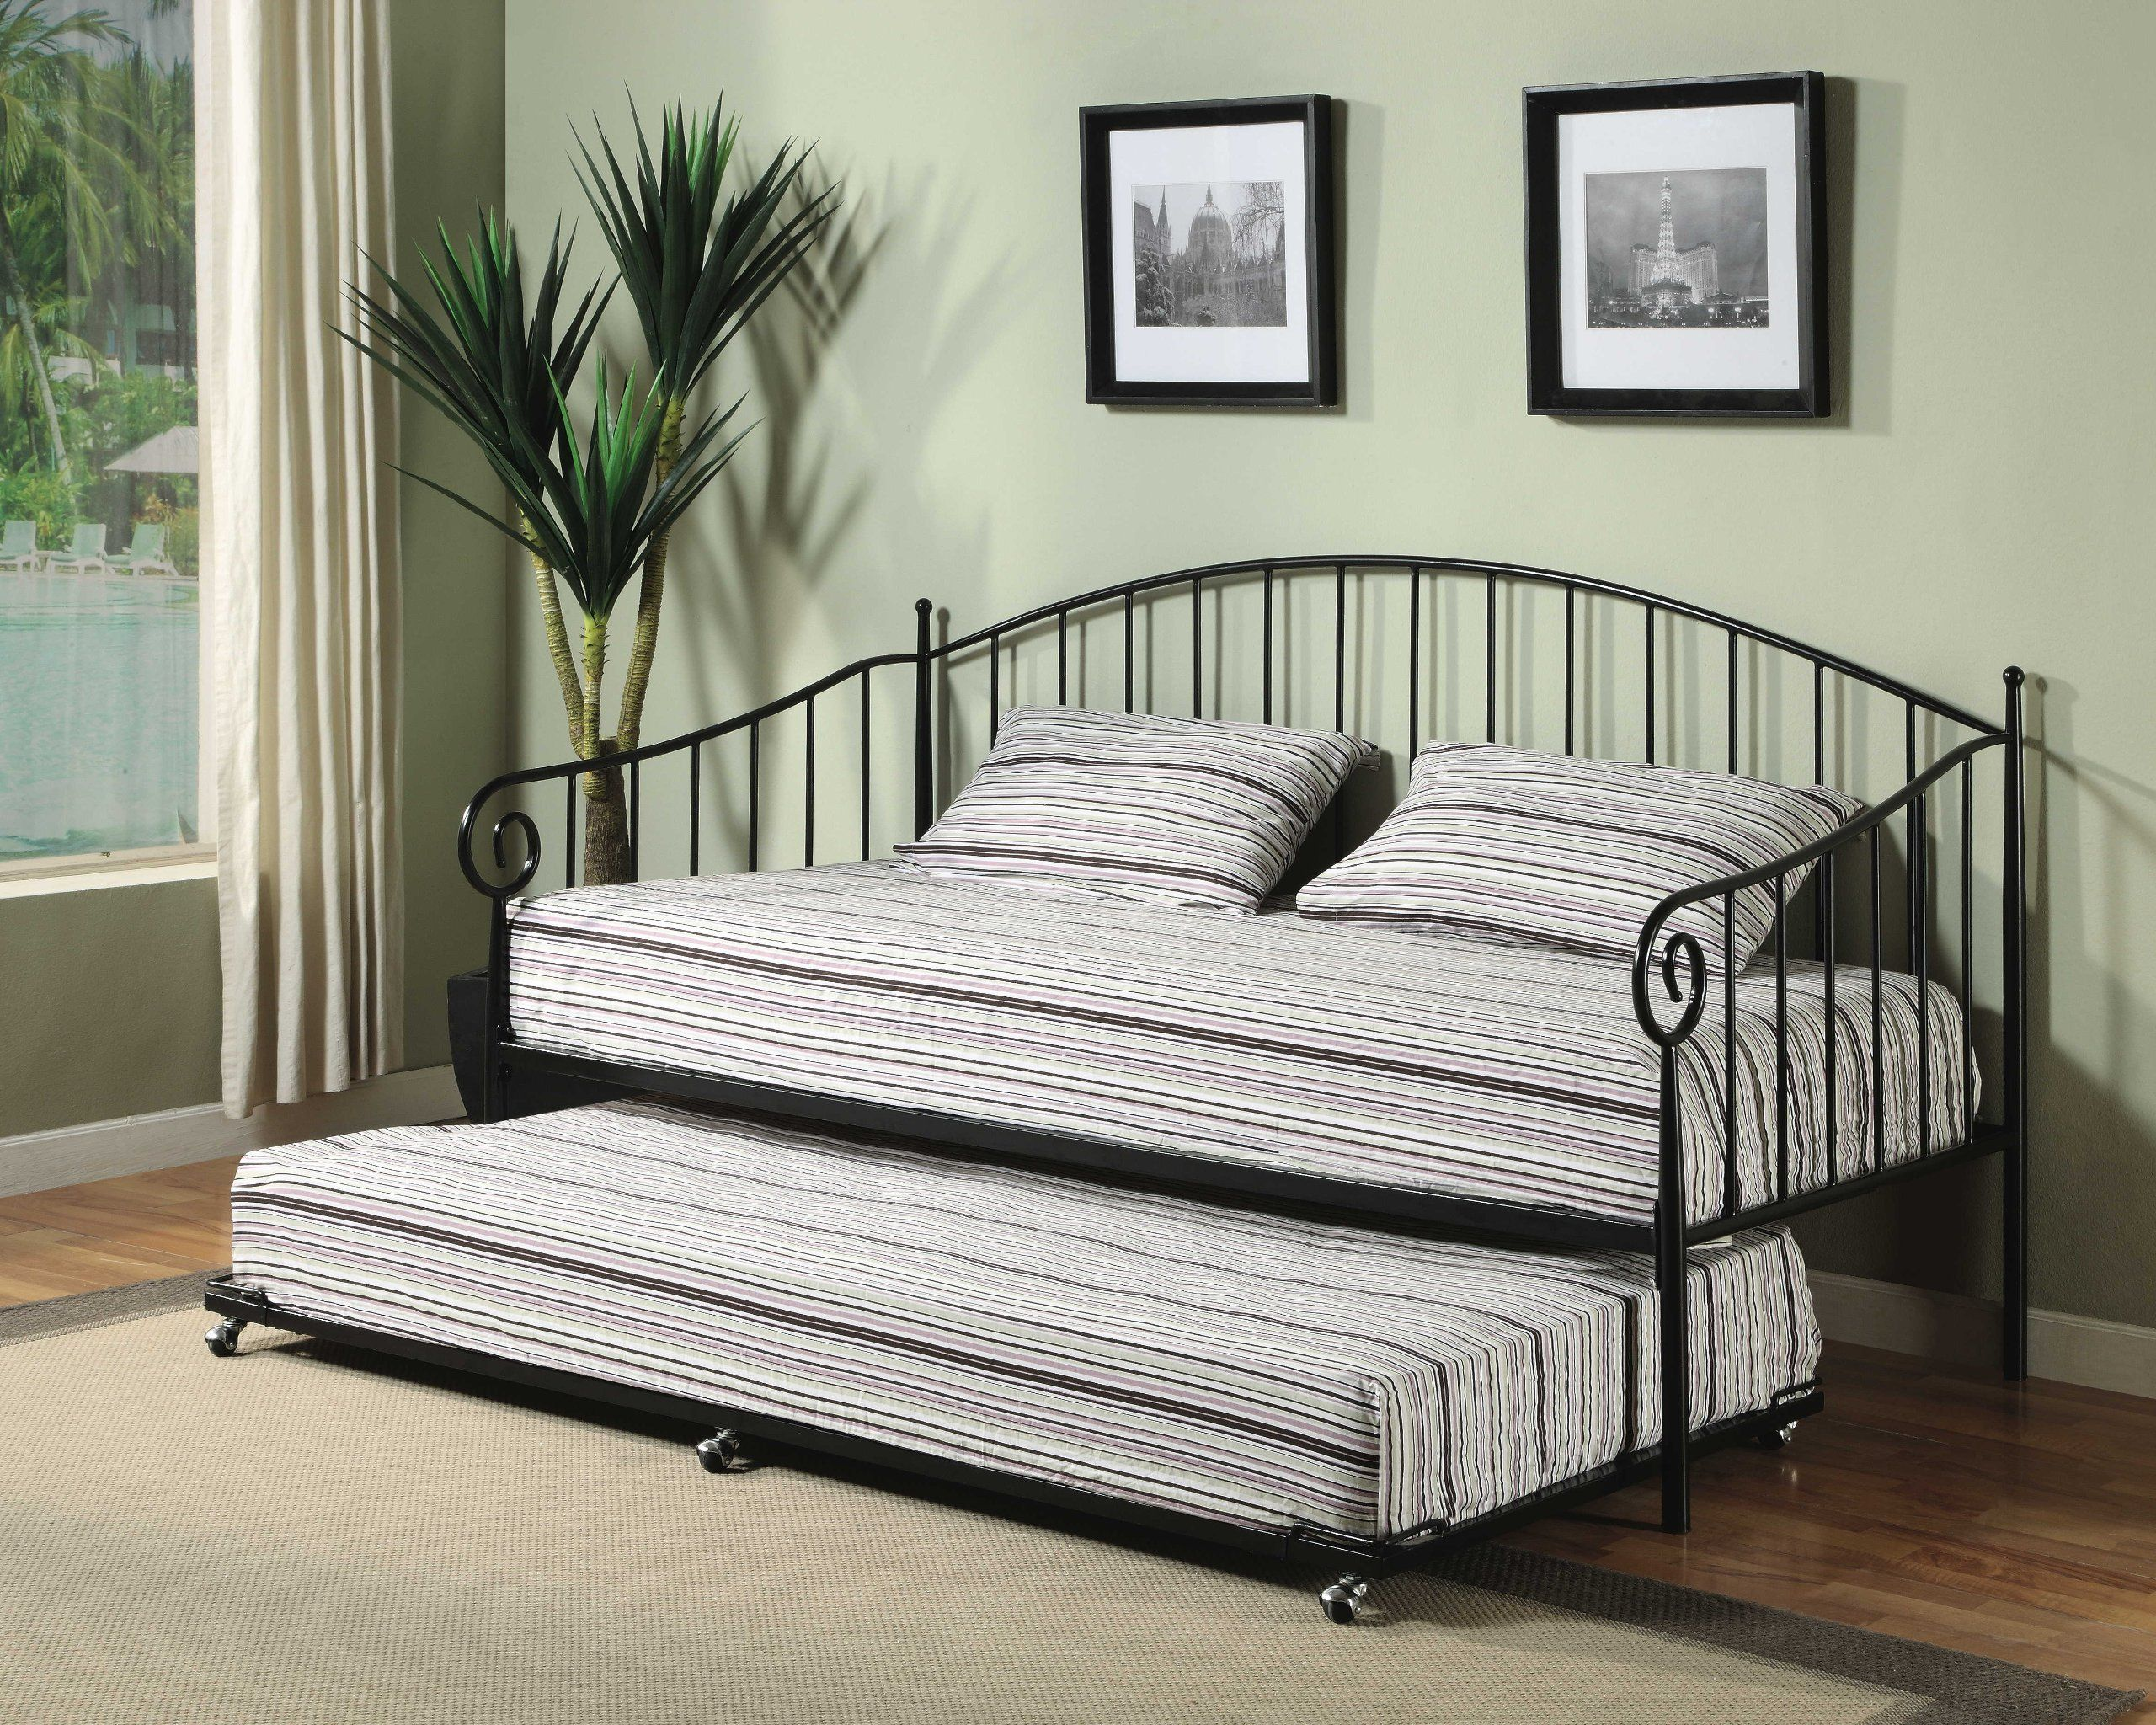 Amazon Com Matt Black Metal Twin Size Day Bed Daybed Frame With